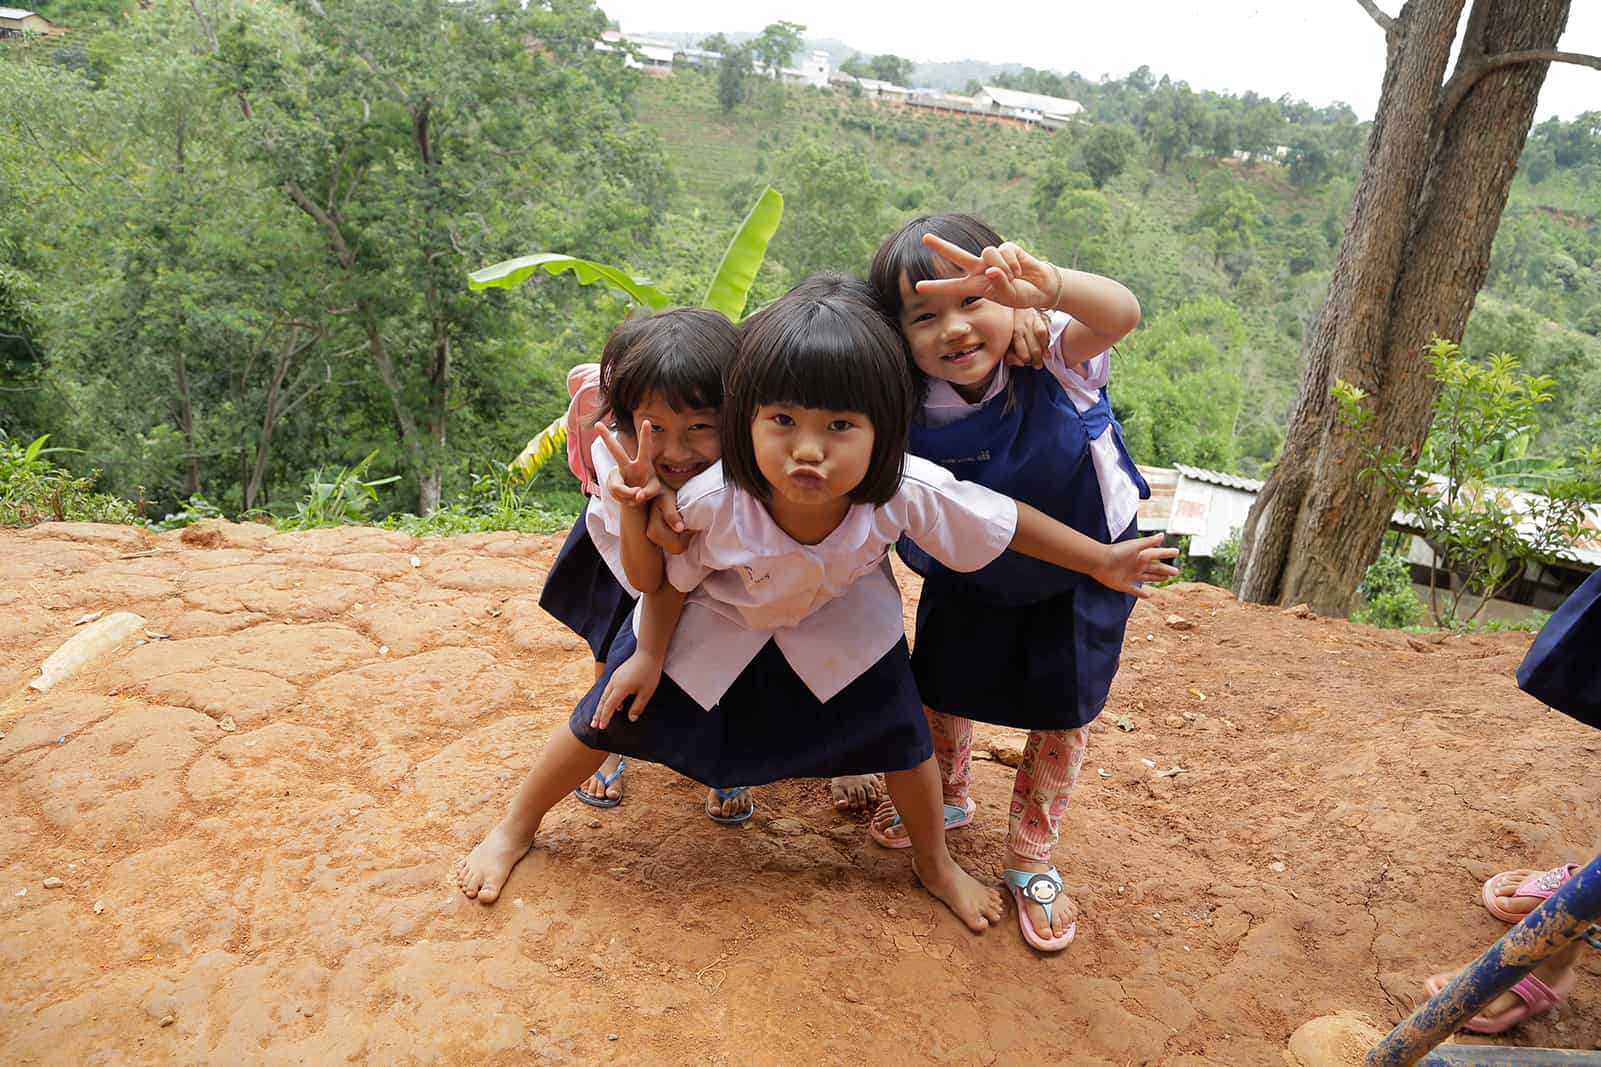 Grils in Thailand showing the peace sign